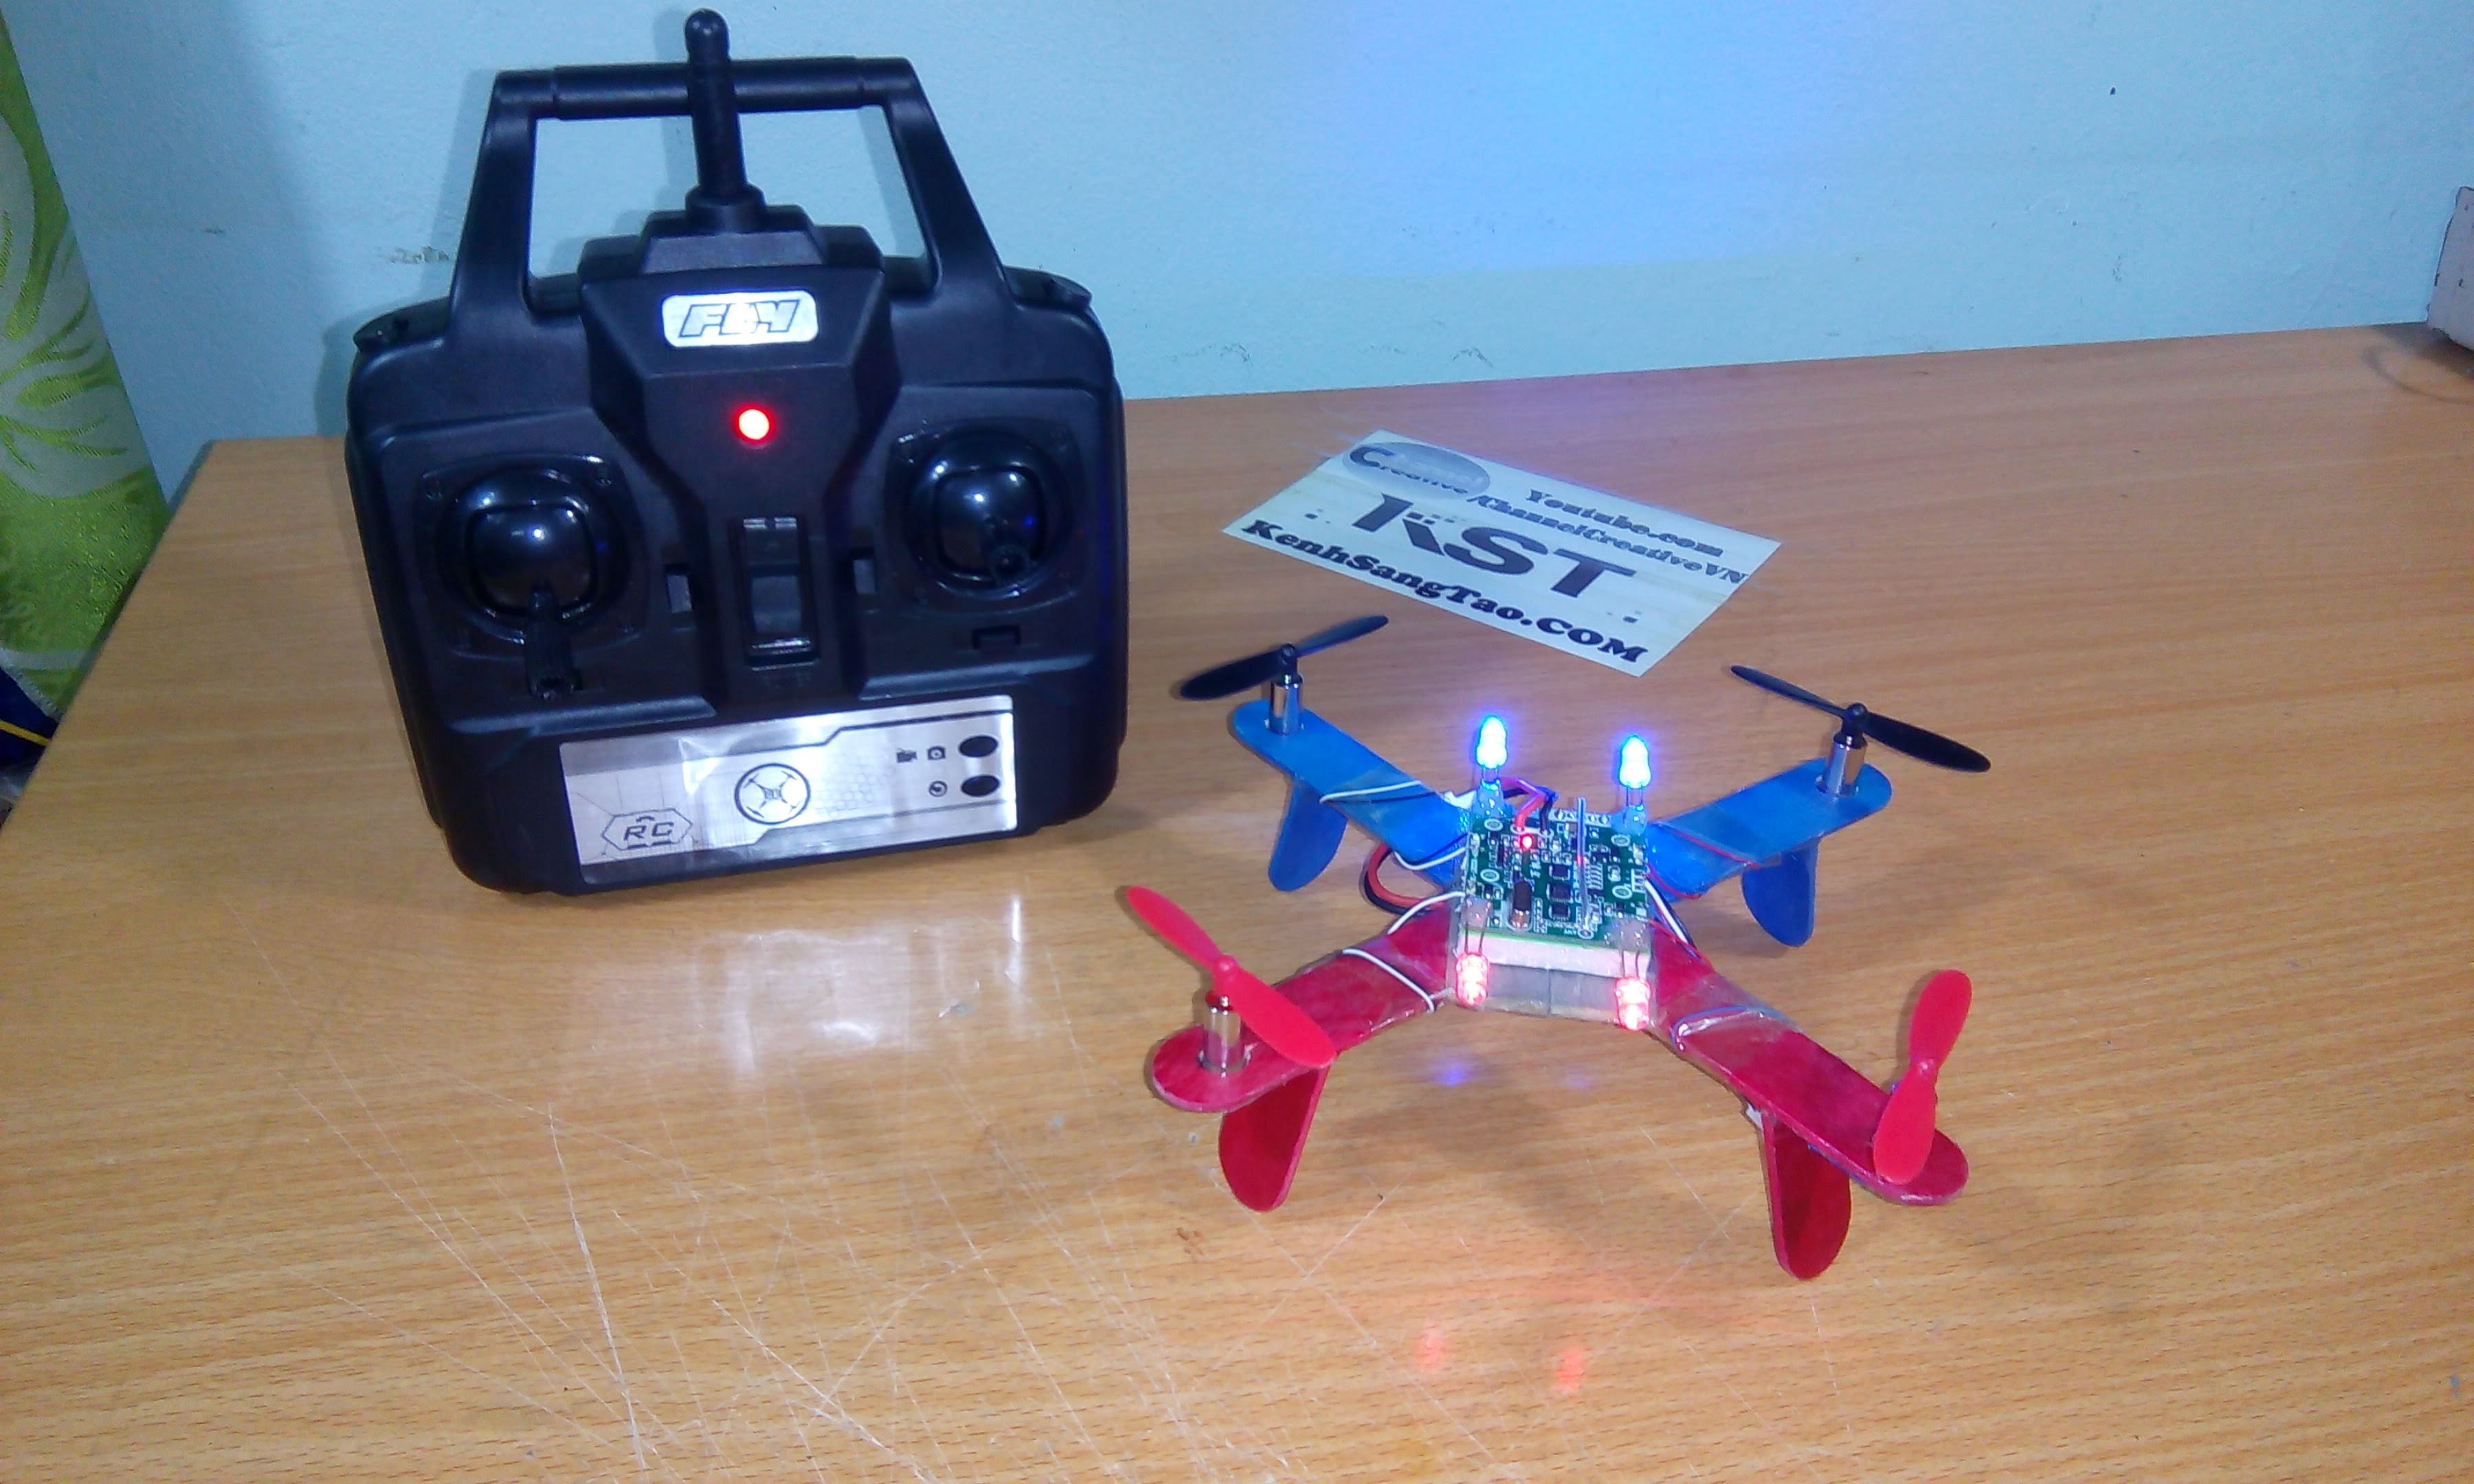 Beginners guide on how to build a mini FPV 250 quadcopter